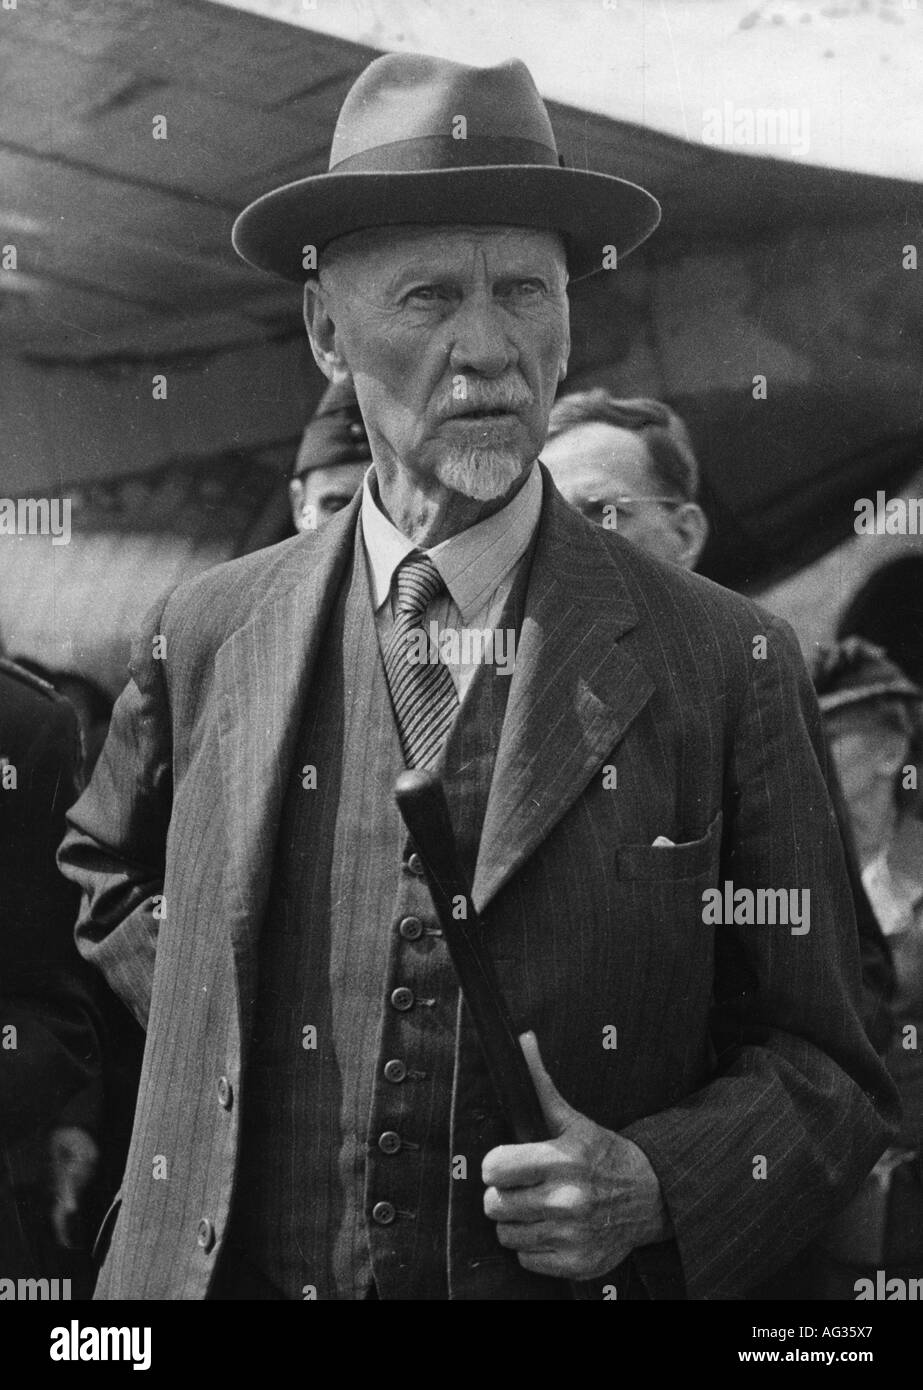 Smuts, Jan Christian, 24.5.1870 - 11.9.1950, South African politician, Prime Minister 3.9.1919 - 30.6.1924 and 5.9.1939 - 4.6.1948, half length, 1940s, 40s, South Africa, politics, Second World War, apartheid, 20th century, , Additional-Rights-Clearances-NA - Stock Image